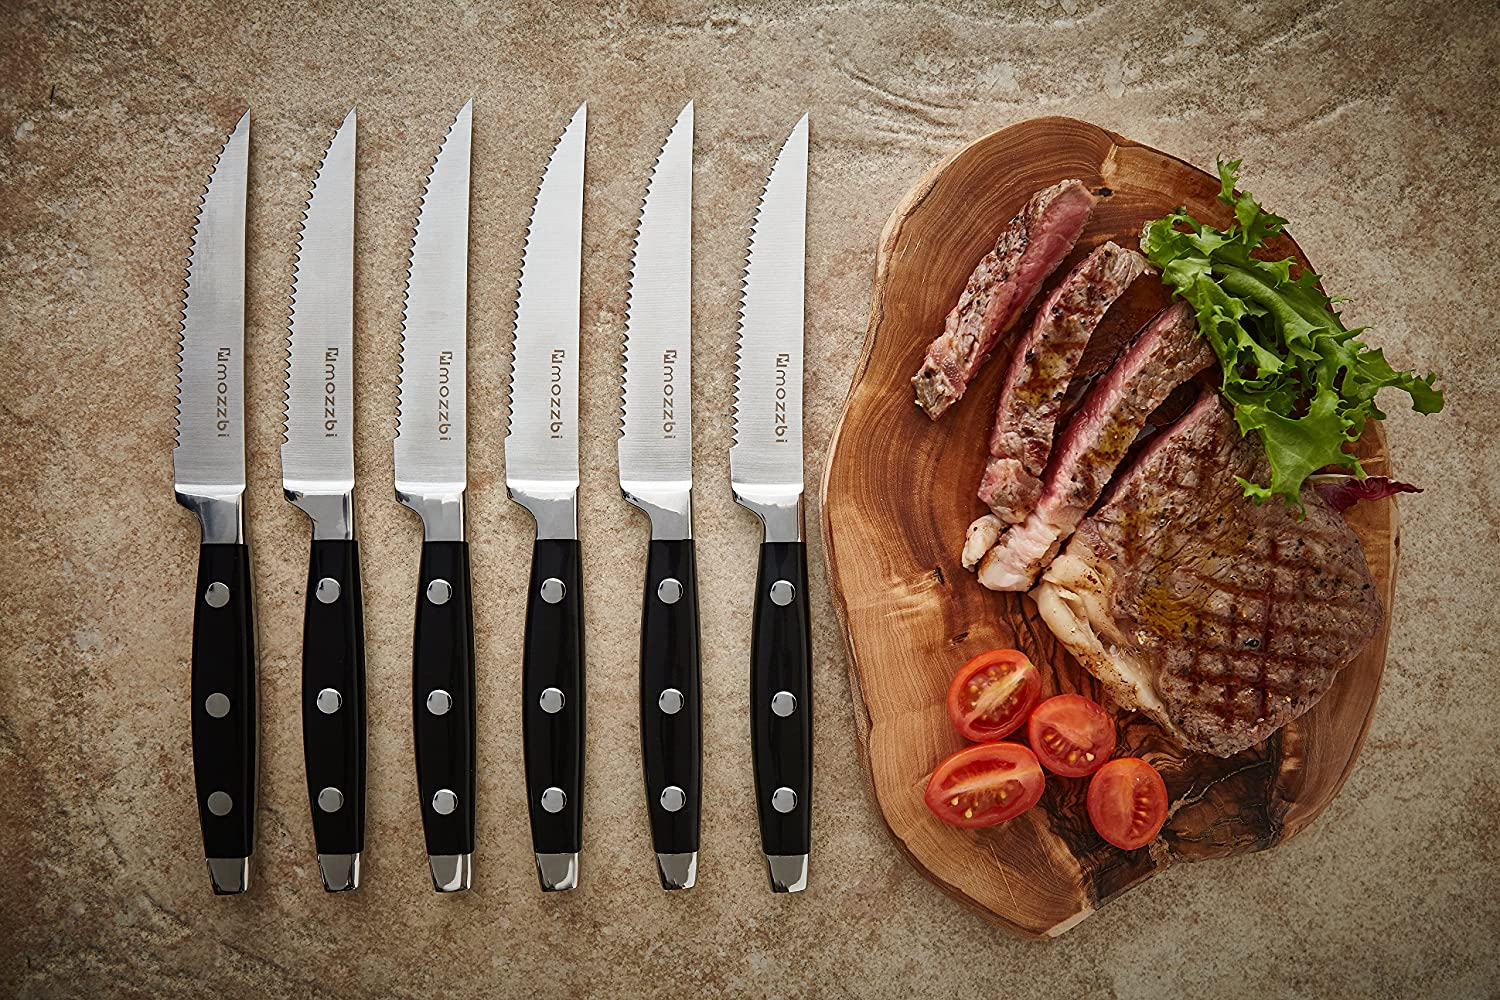 Mozzbi 6-Pcs Premium Serrated Steak Knives